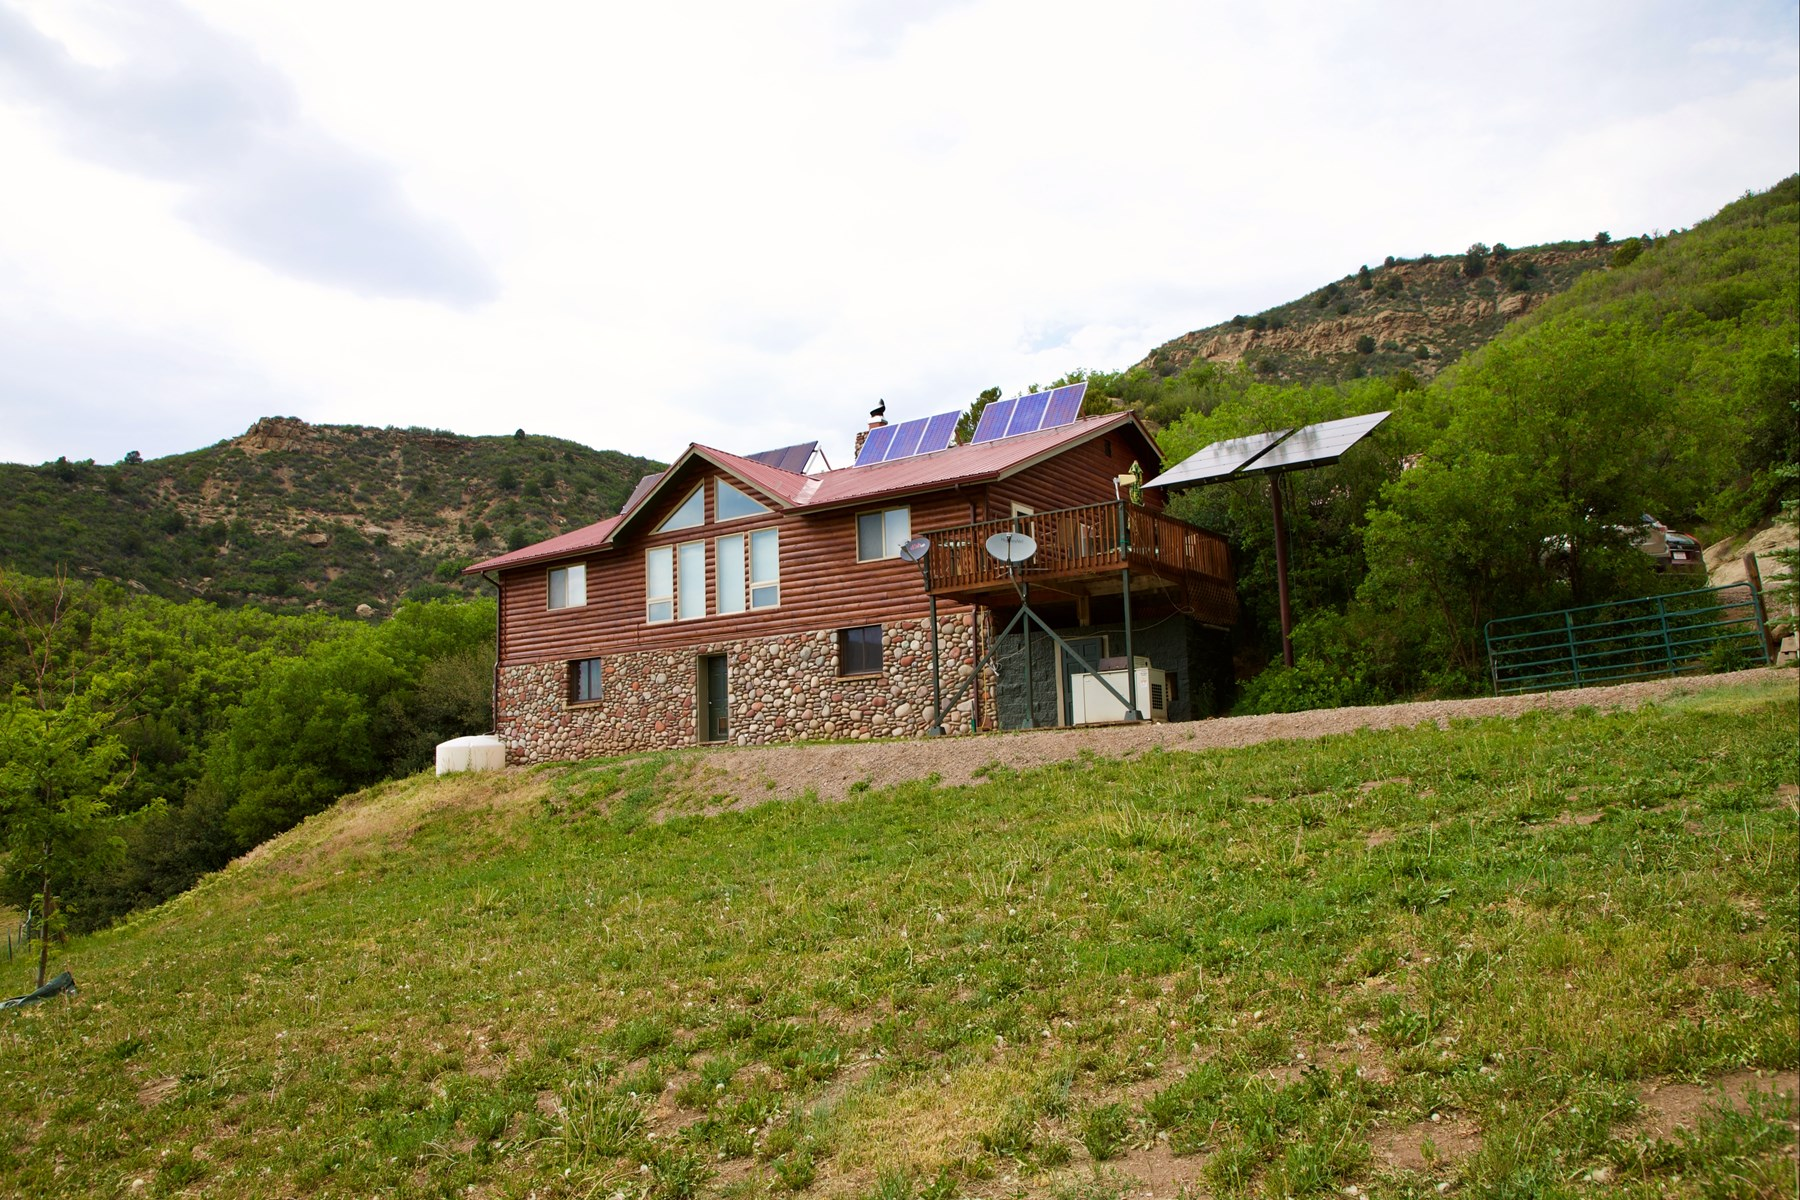 Colorado off-grid mountain horse property for sale, hunting